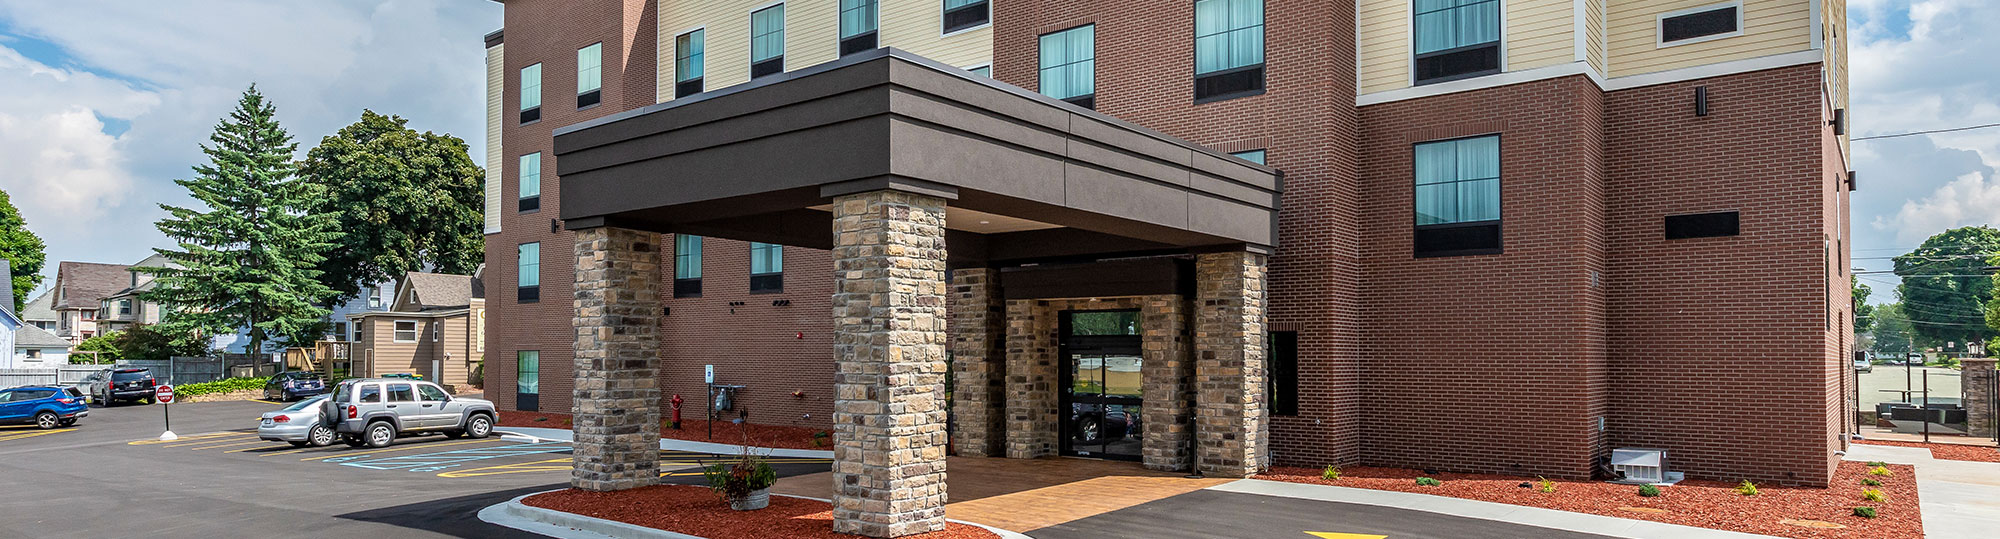 Cobblestone Hotel and Suites Hartford